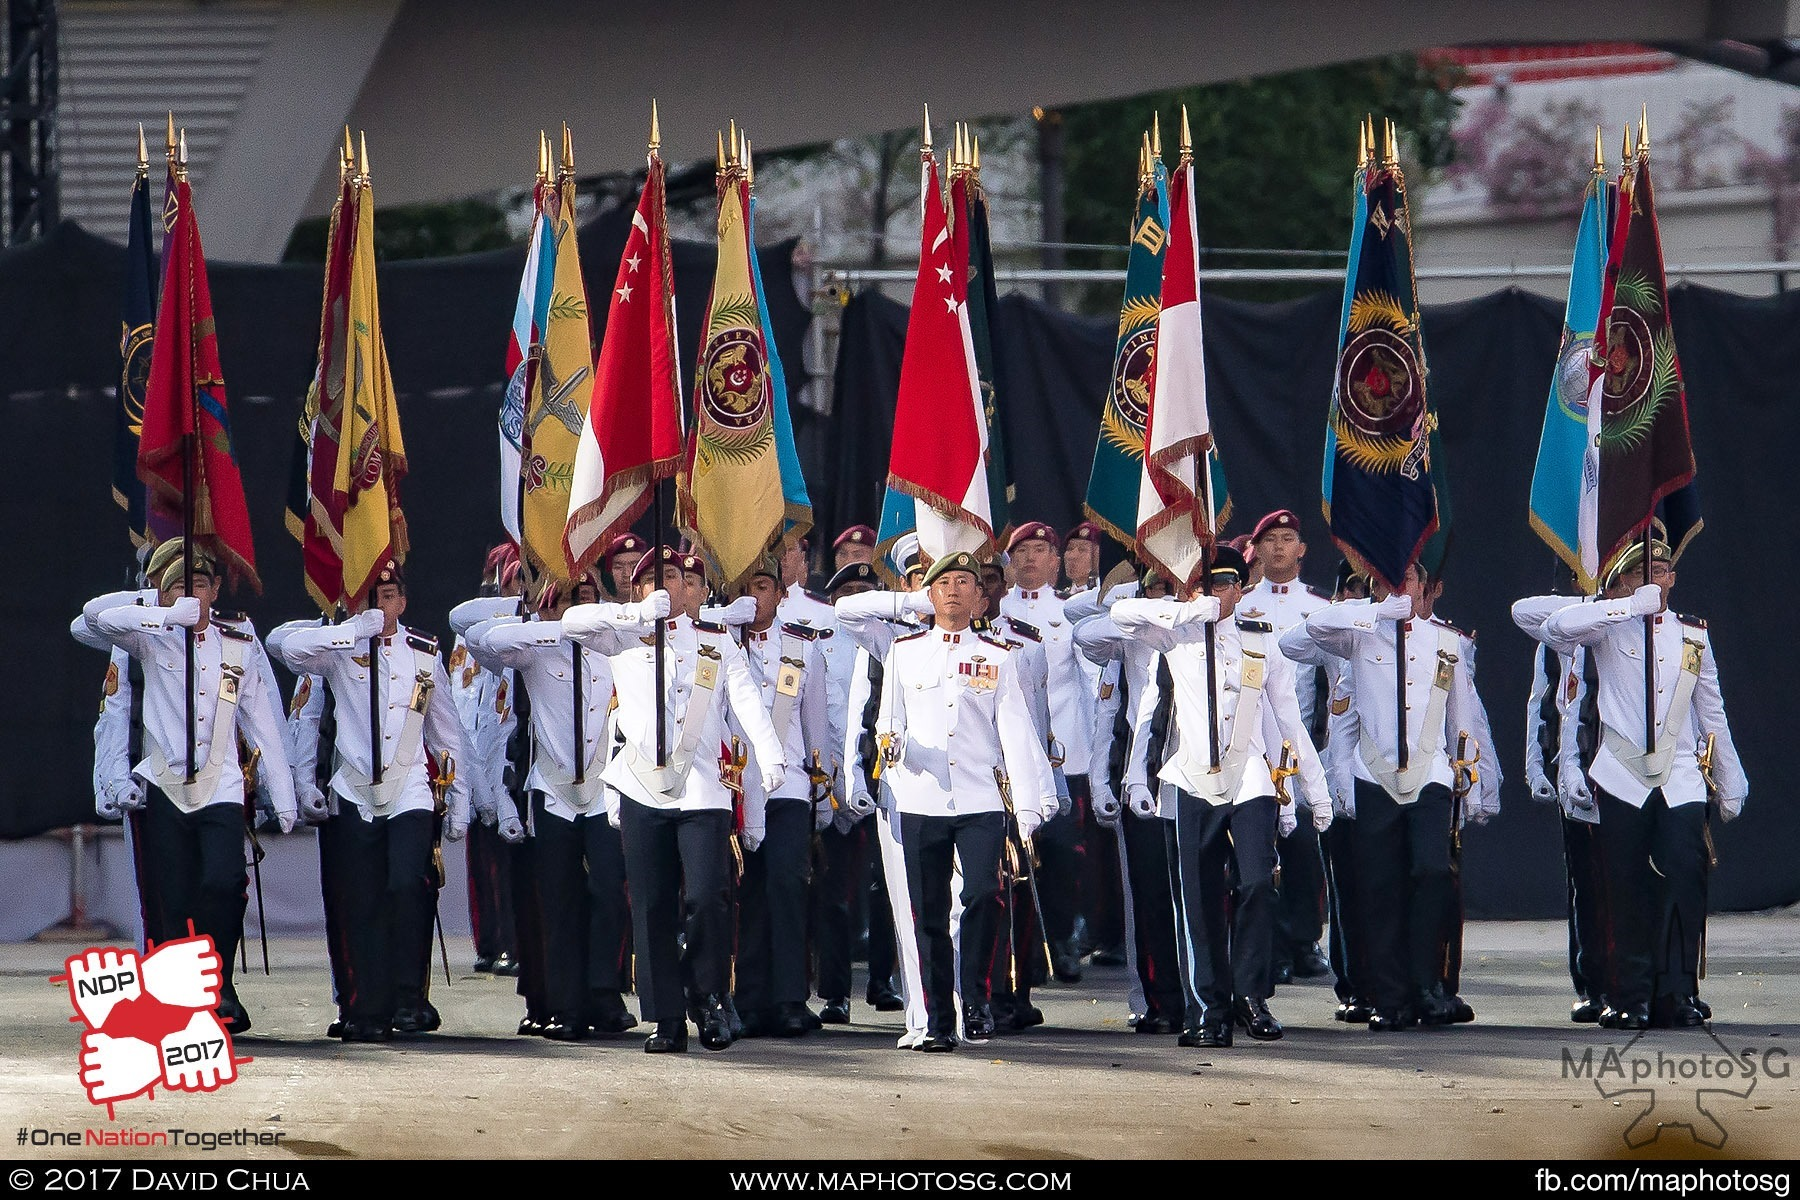 31. Parade Commander LTC (NS) Lim Wee Tee leads the Colours Party and Guard of Honor contingents comprising of the Army, Navy, Air Force and Police